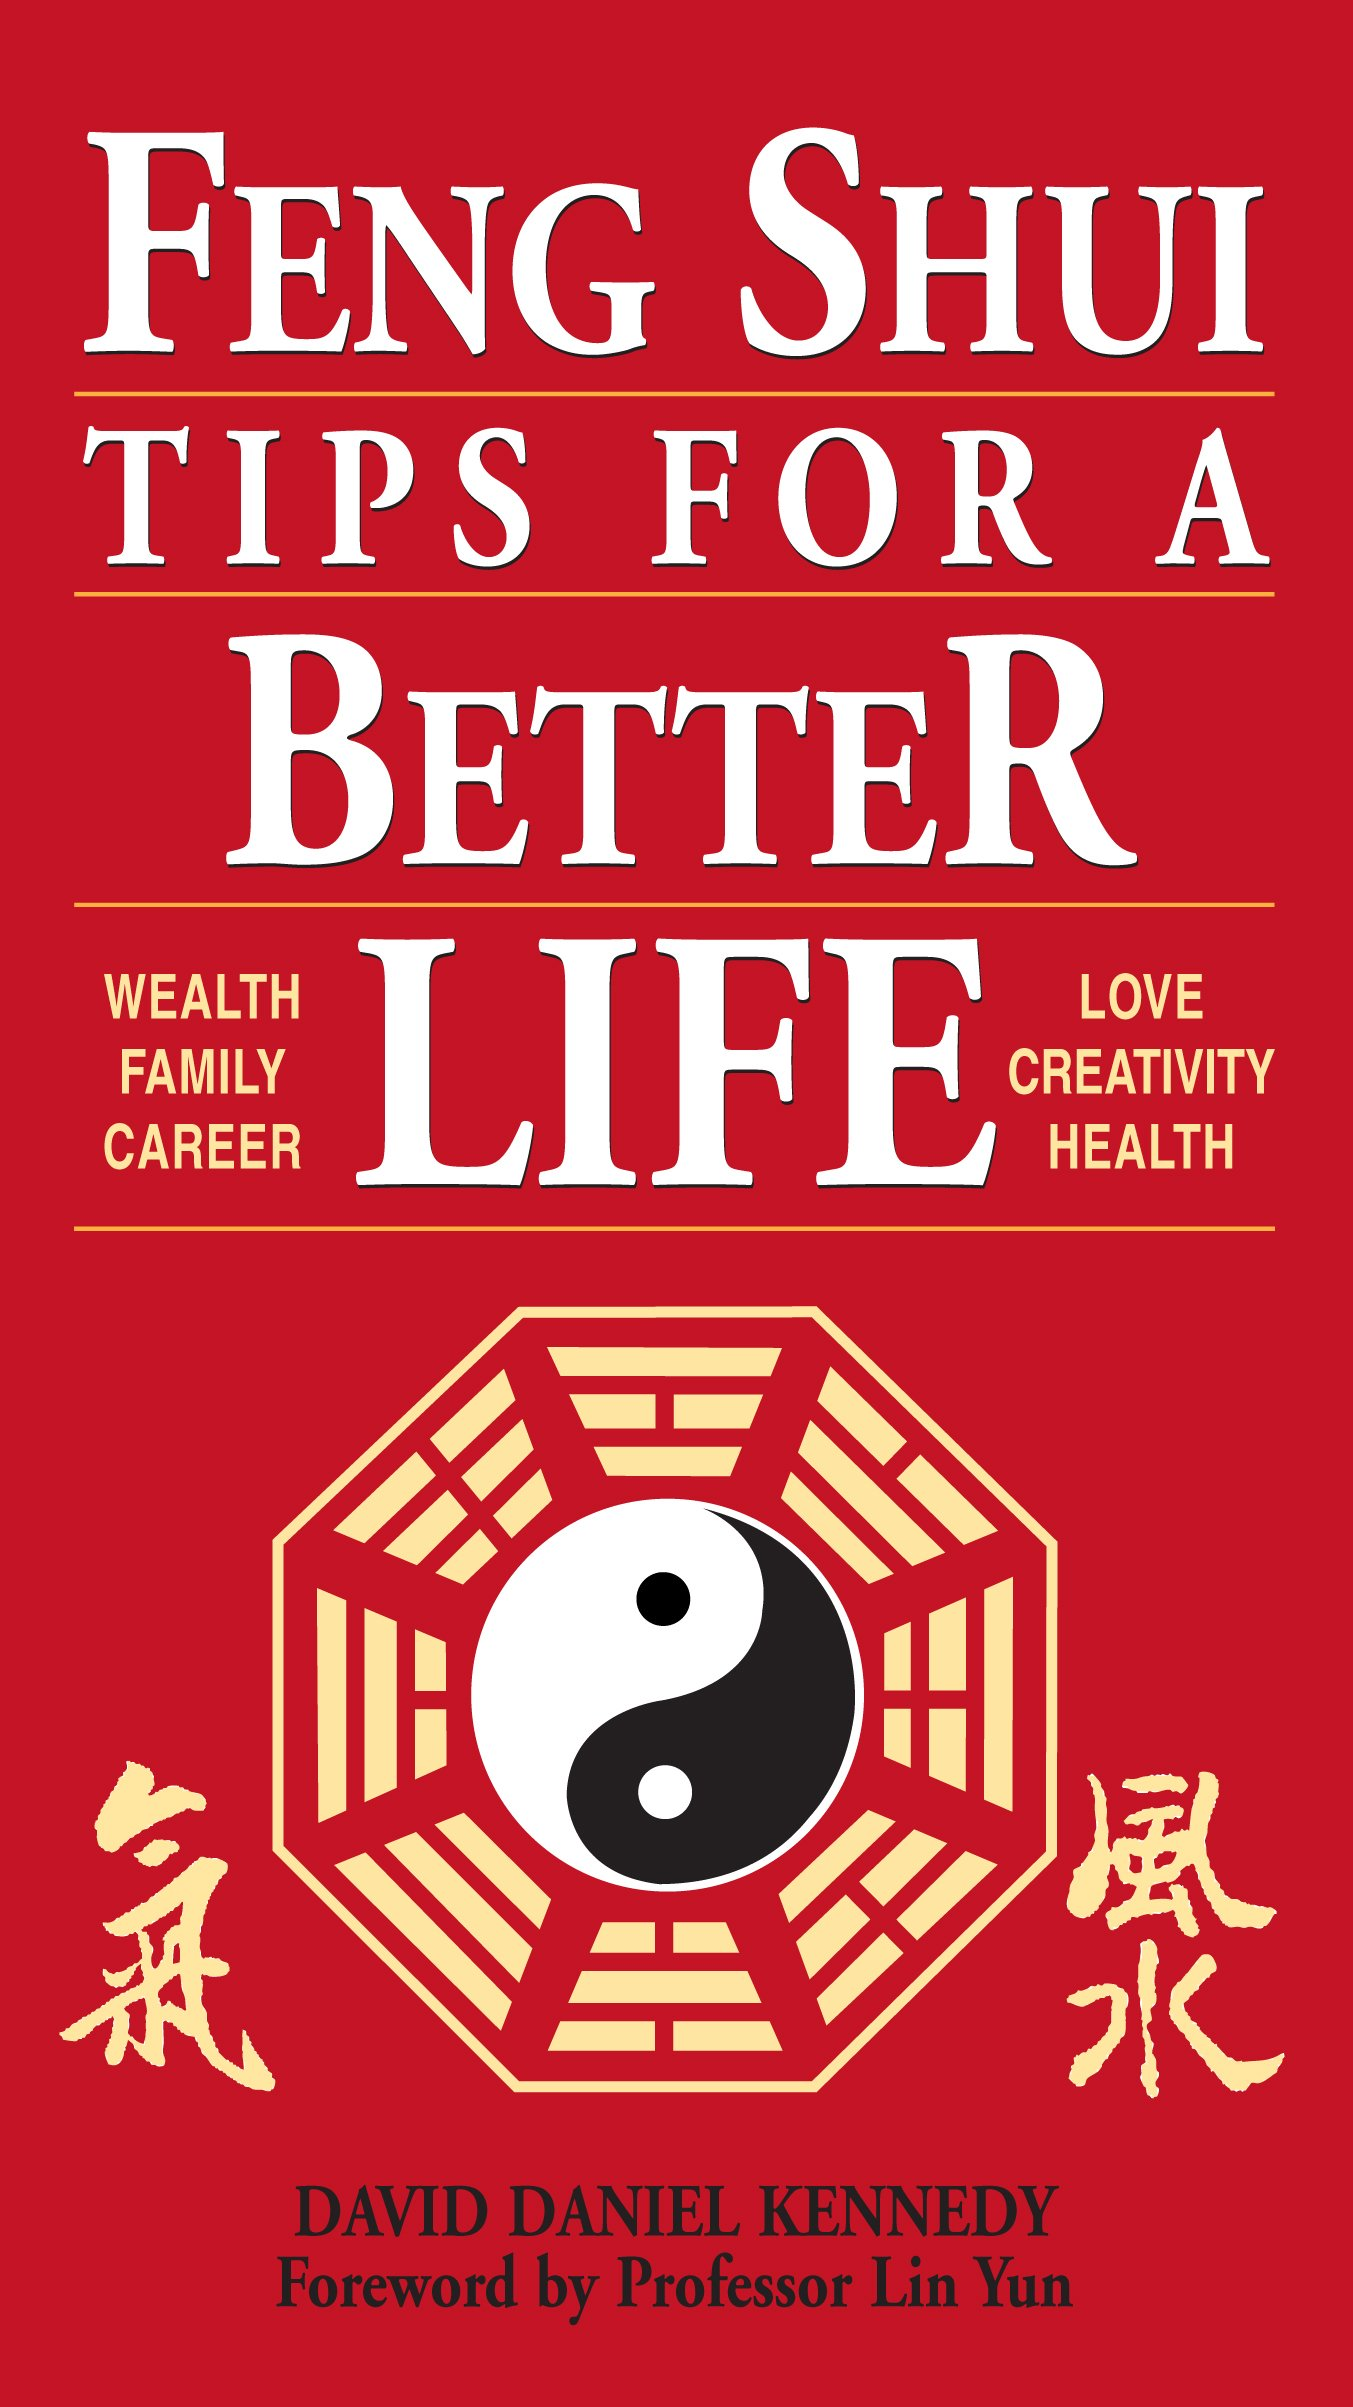 Feng Shui Tips For A Better Life David Daniel Kennedy